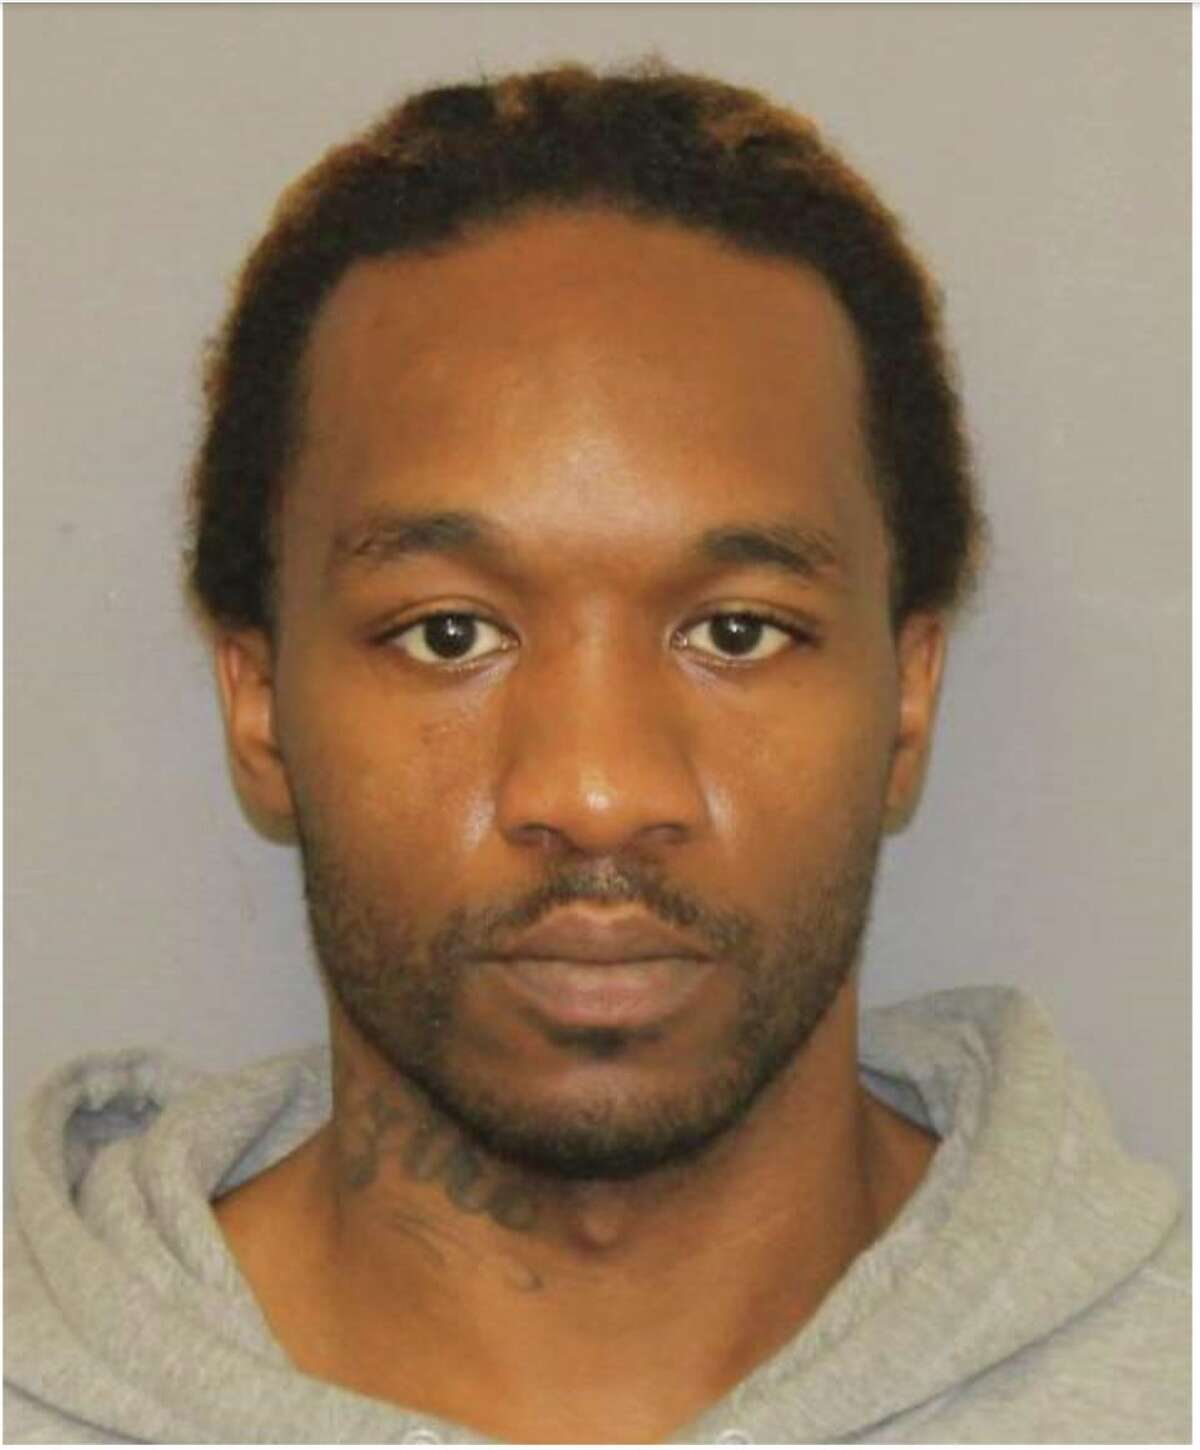 Justin Walker, Sr., 36, was convicted May 14, 2021 of three felony charges in connection with slashing a woman in the face at the Union Inn in Schenectady, NY on Oct. 13, 2021.